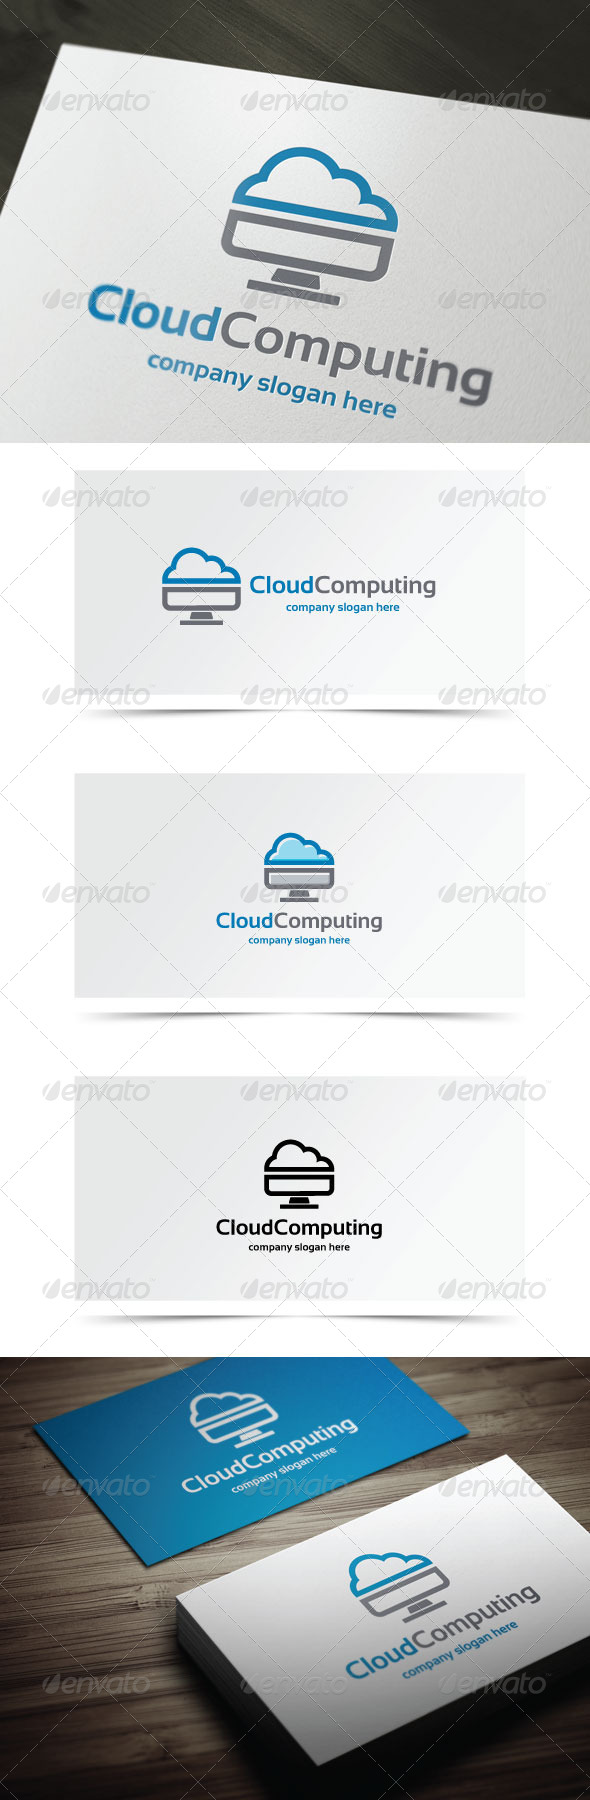 GraphicRiver Cloud Computing 8296194